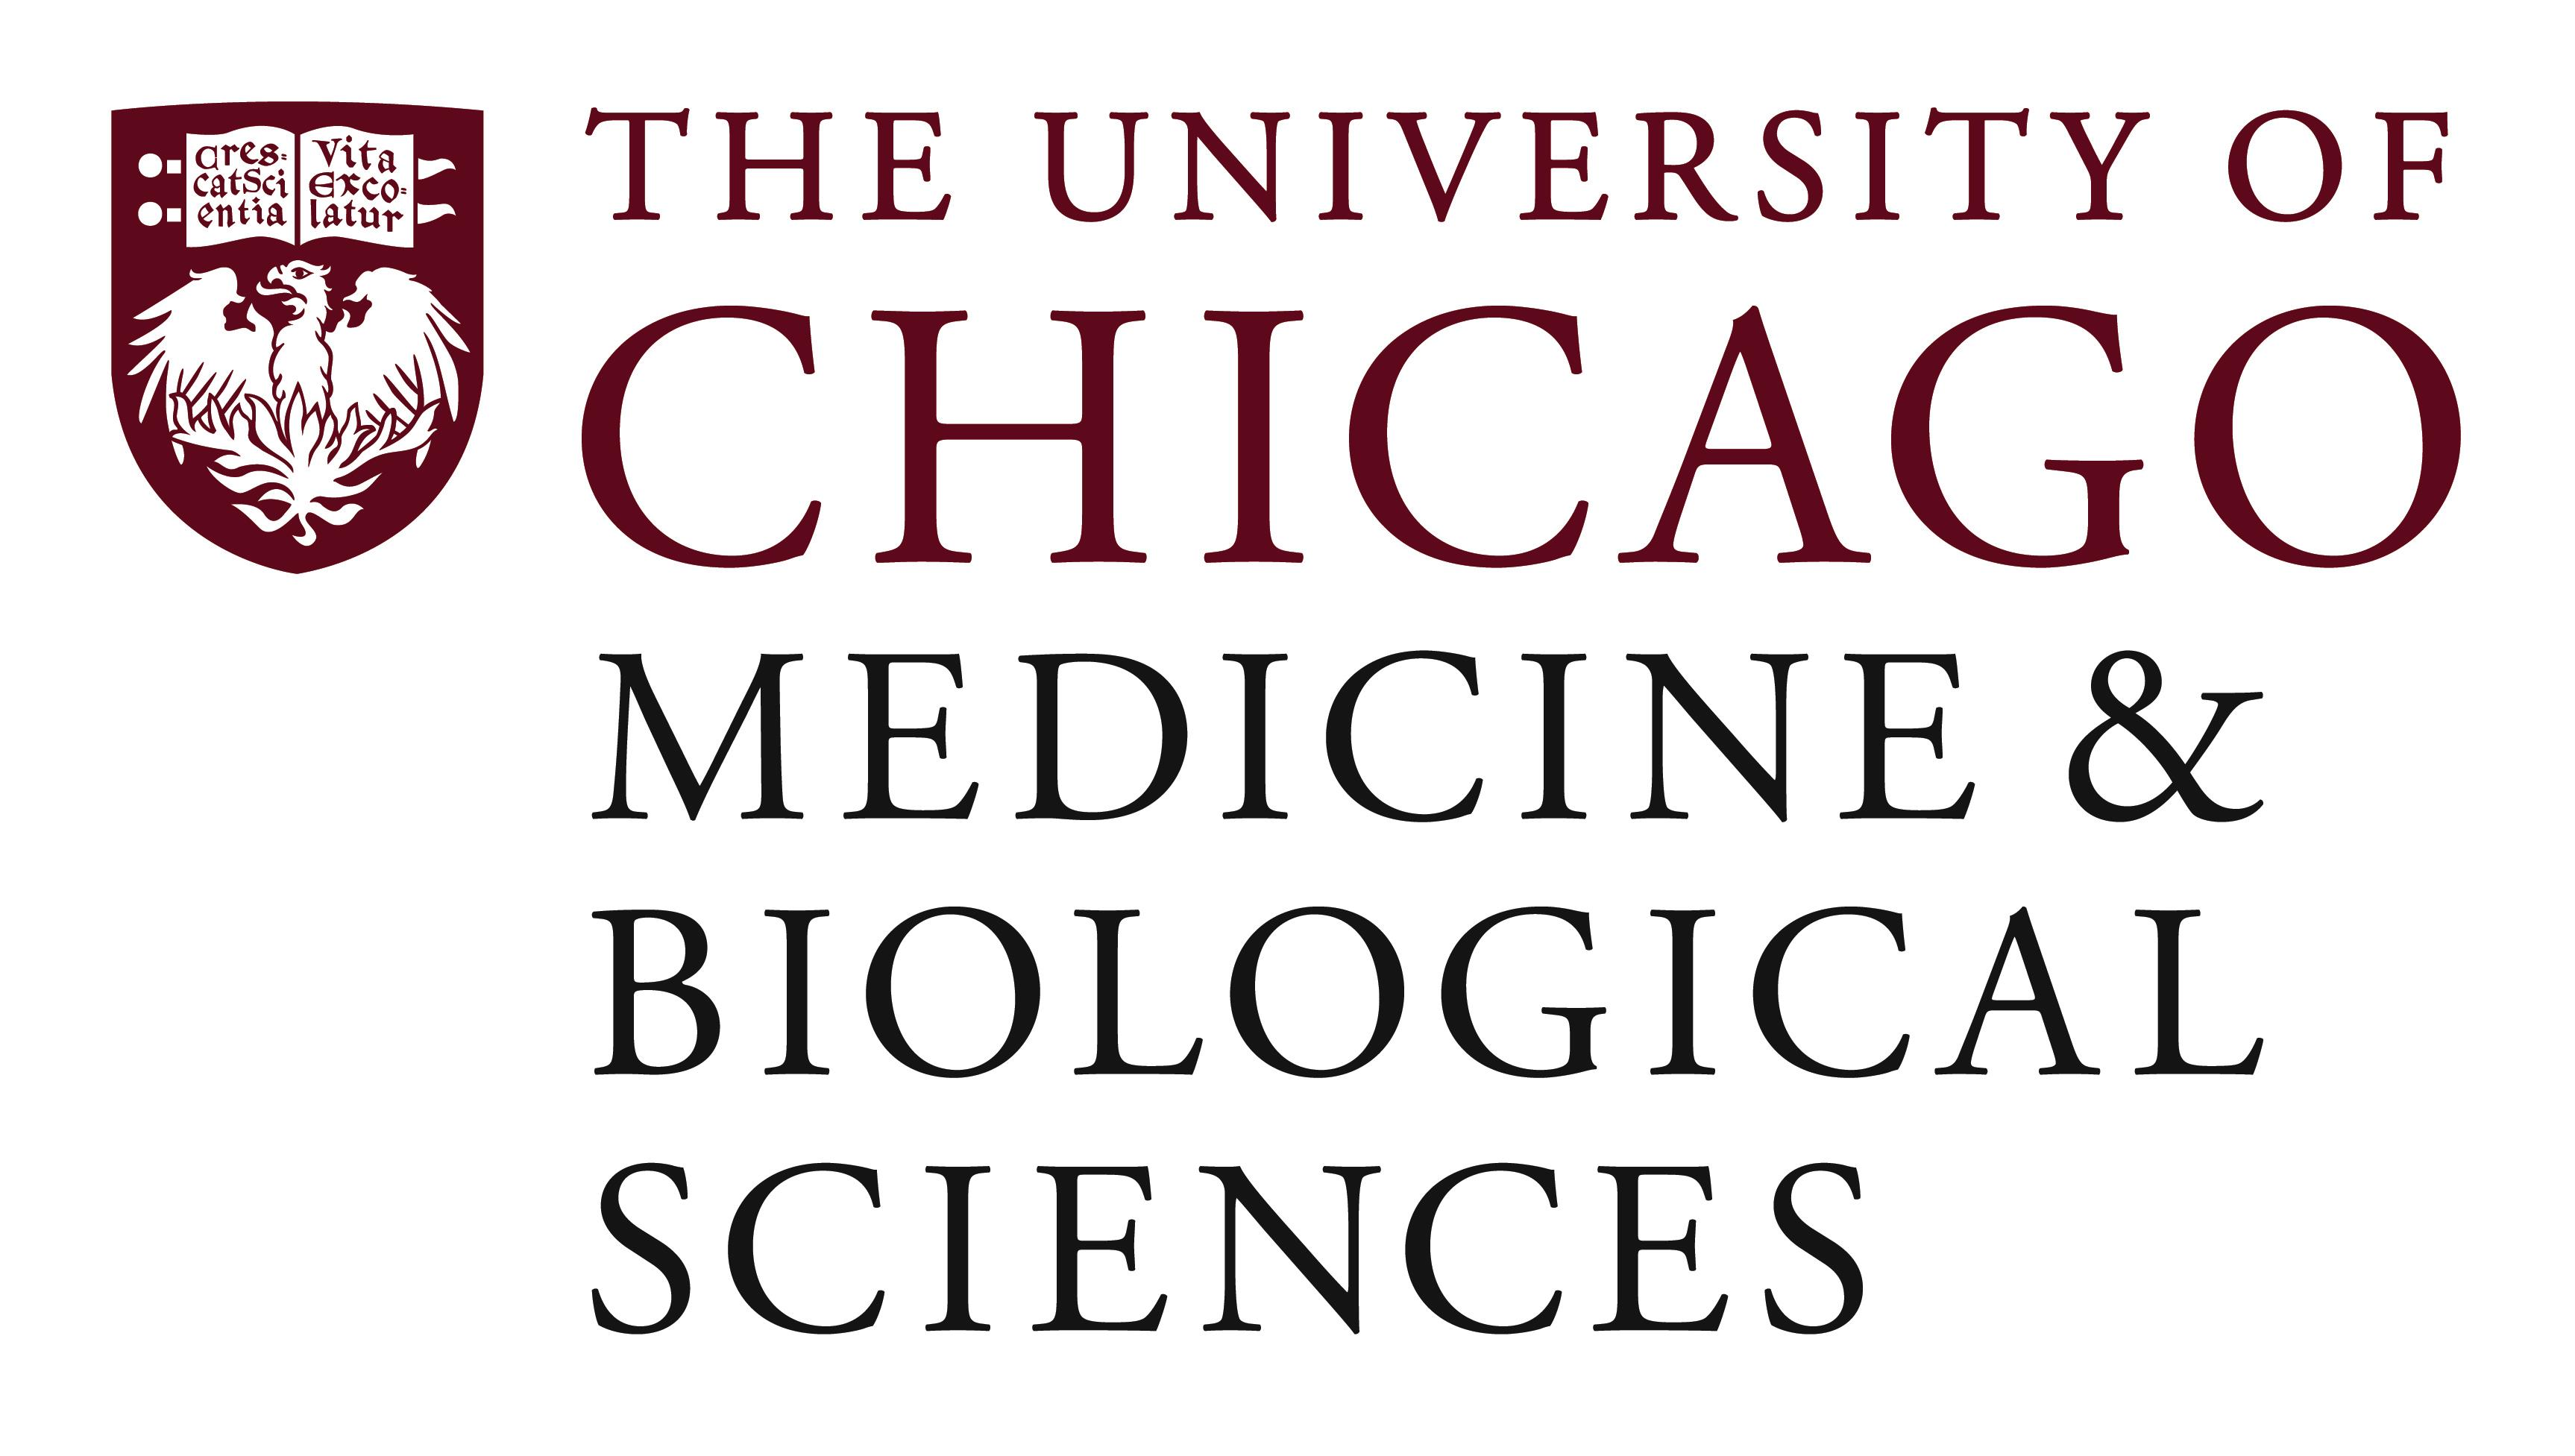 University of Chicago logo